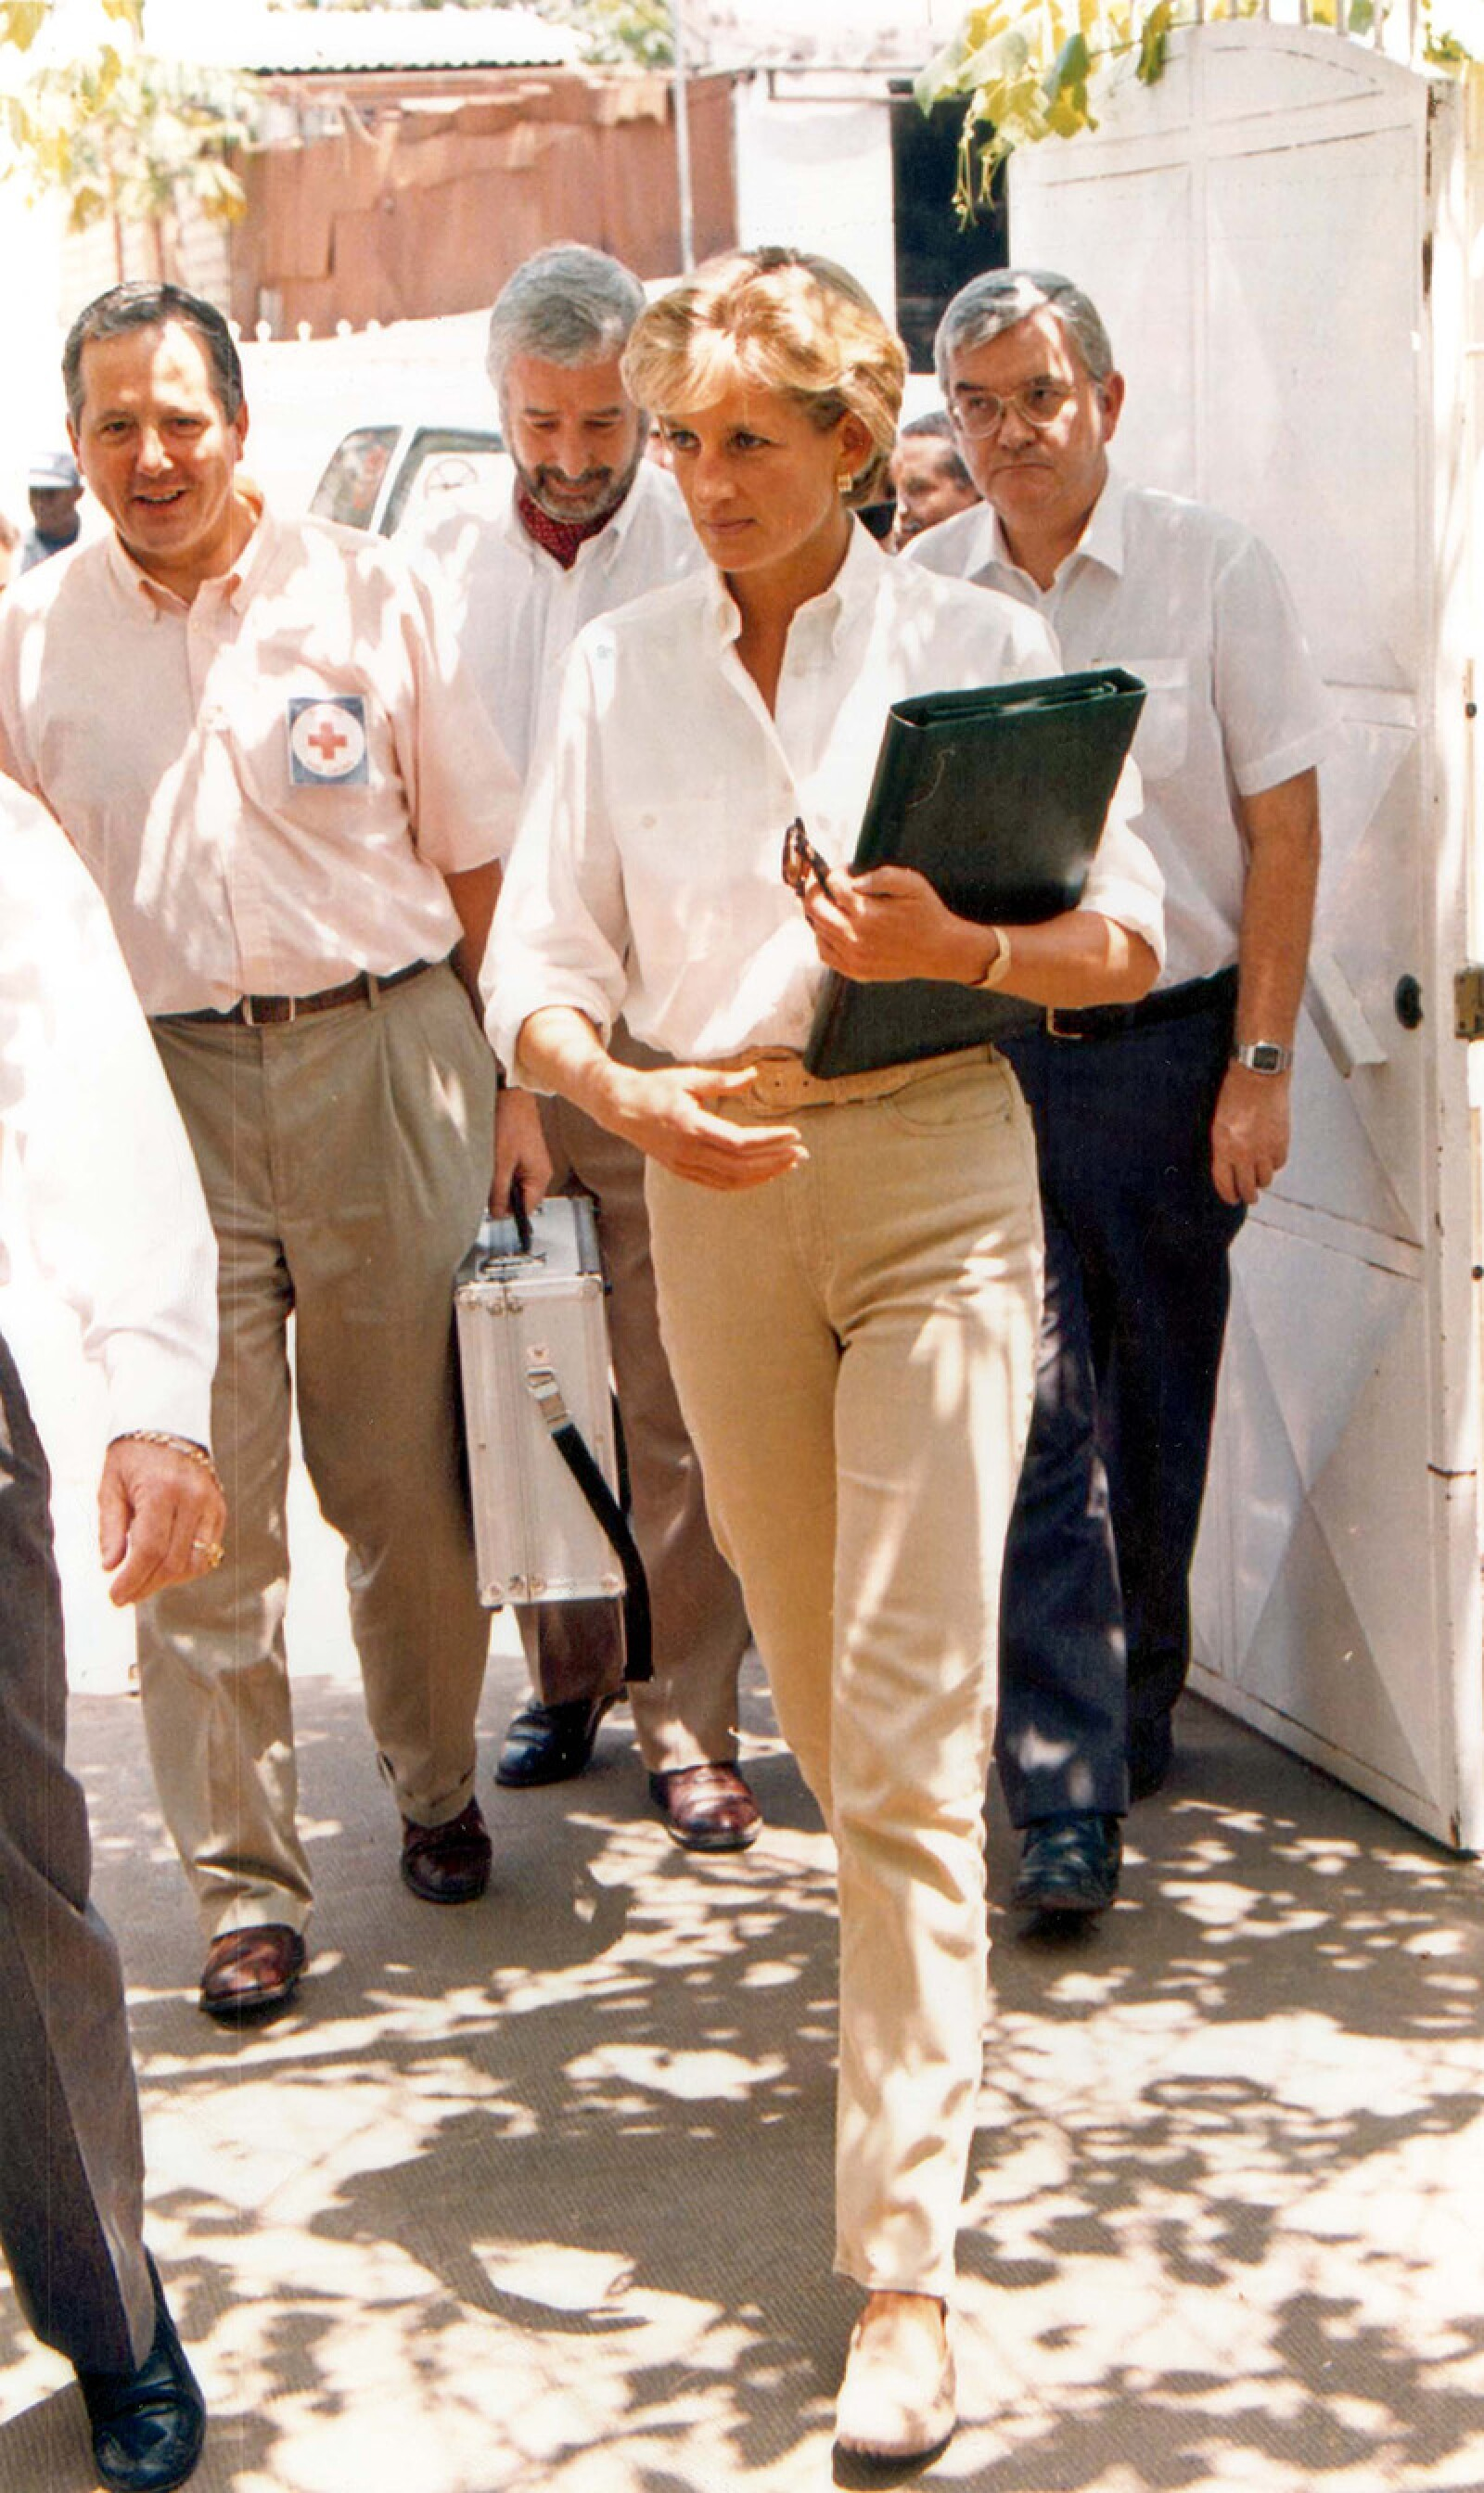 Princess Of Wales - 1997 Diana Arriving For A Briefing At The Red Cross In Luanda Angola .. After A Ten Hour Flight She Bounced Down The Aircraft Steps In Blue Jeans And Sneakers. Within 90 Minutes She Had Changed Into A Pair Of Beige Chinos Loafers